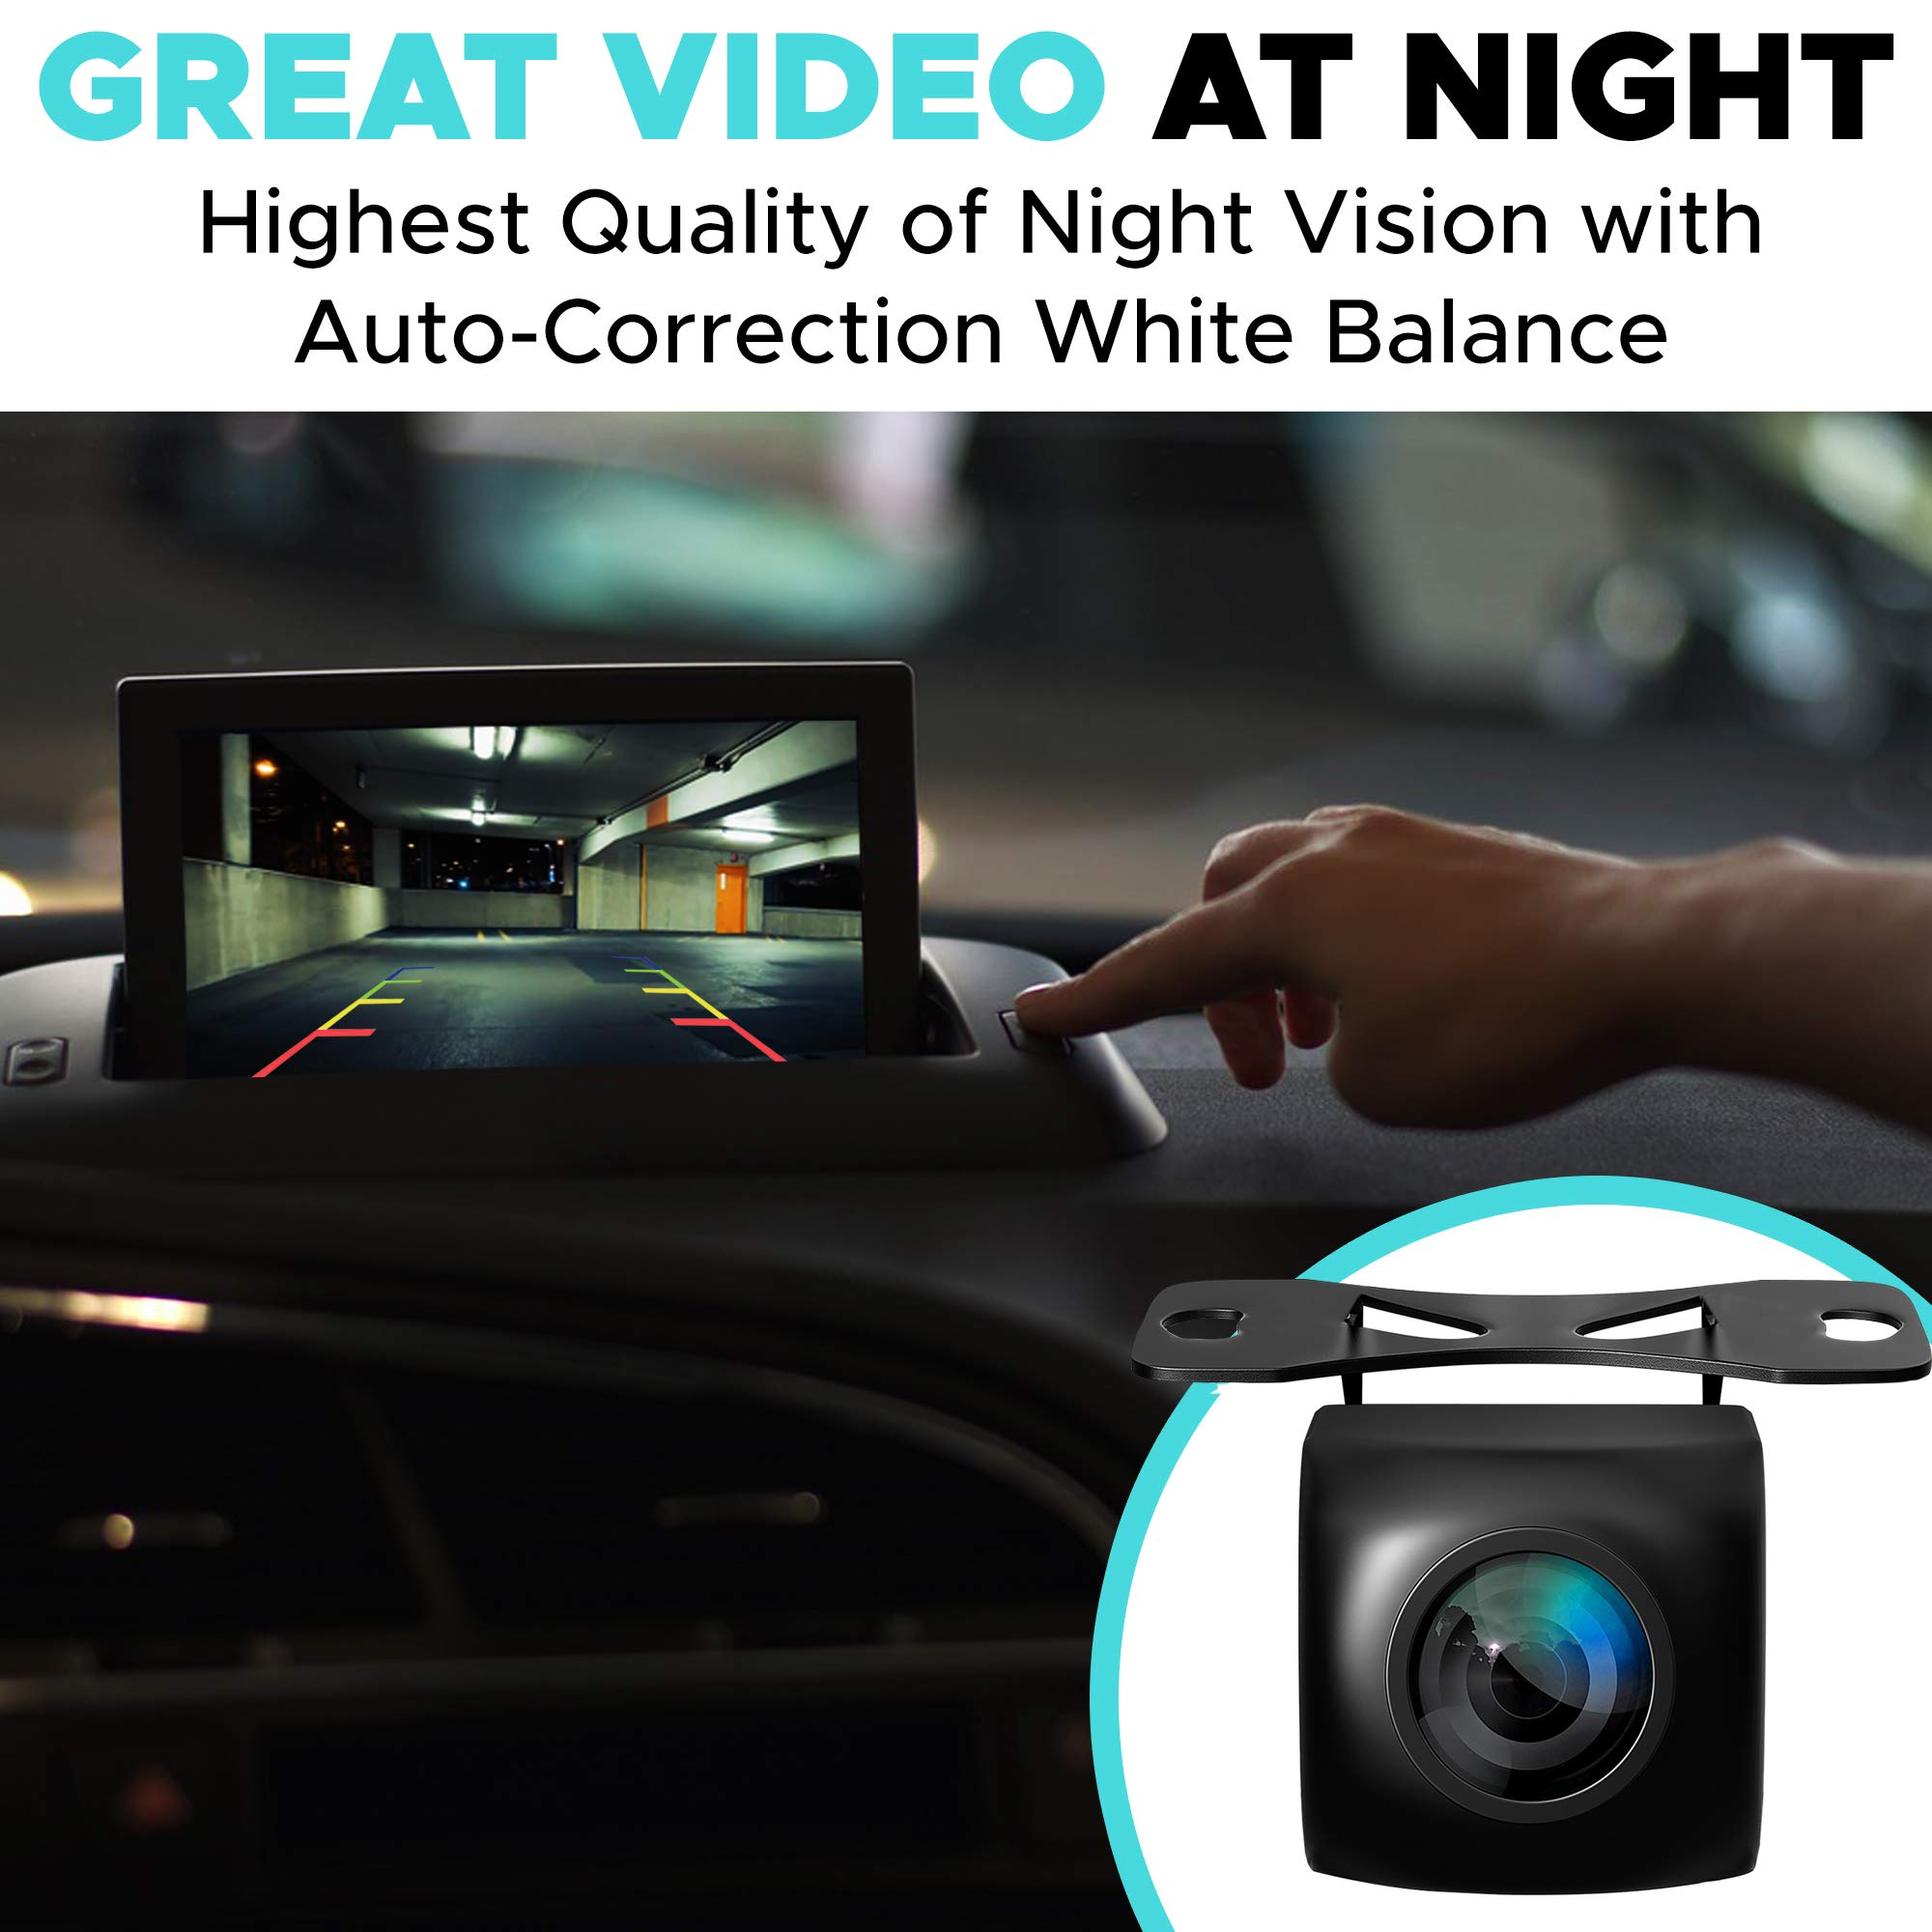 Backup Camera Night Vision - HD 1080p - Car Rear View Parking Camera - Best 170° Wide View Angel - Waterproof Reverse Auto Back Up Car Backing Camera - High Definition - Fits All Vehicles by Yanees by YANEES (Image #3)